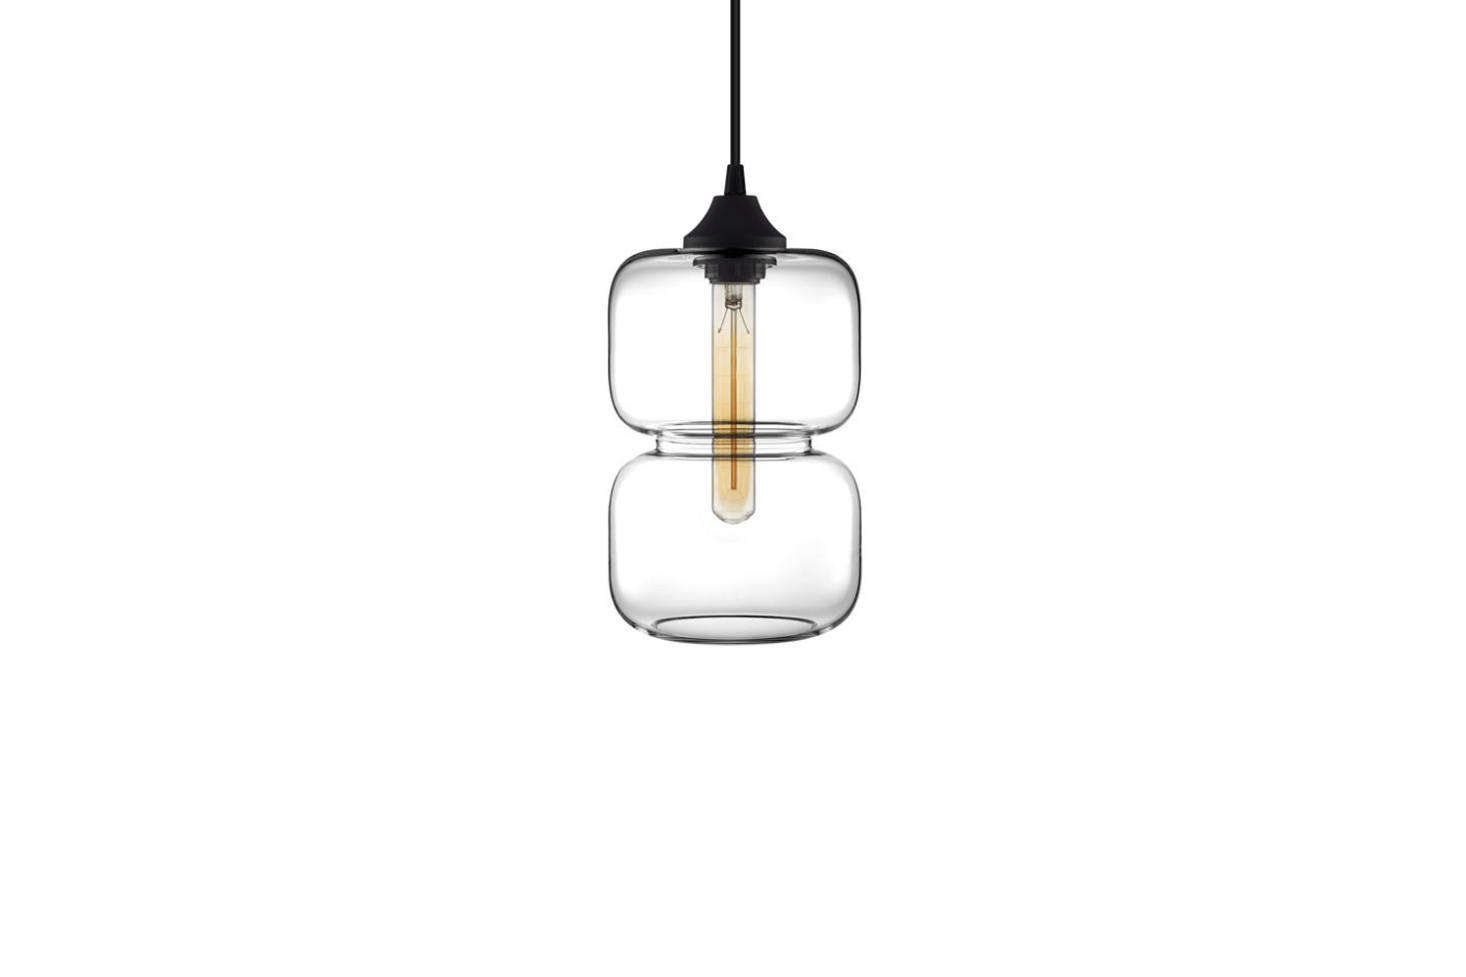 The Niche Pinch Prisma Pendant Light is $695 at Niche.